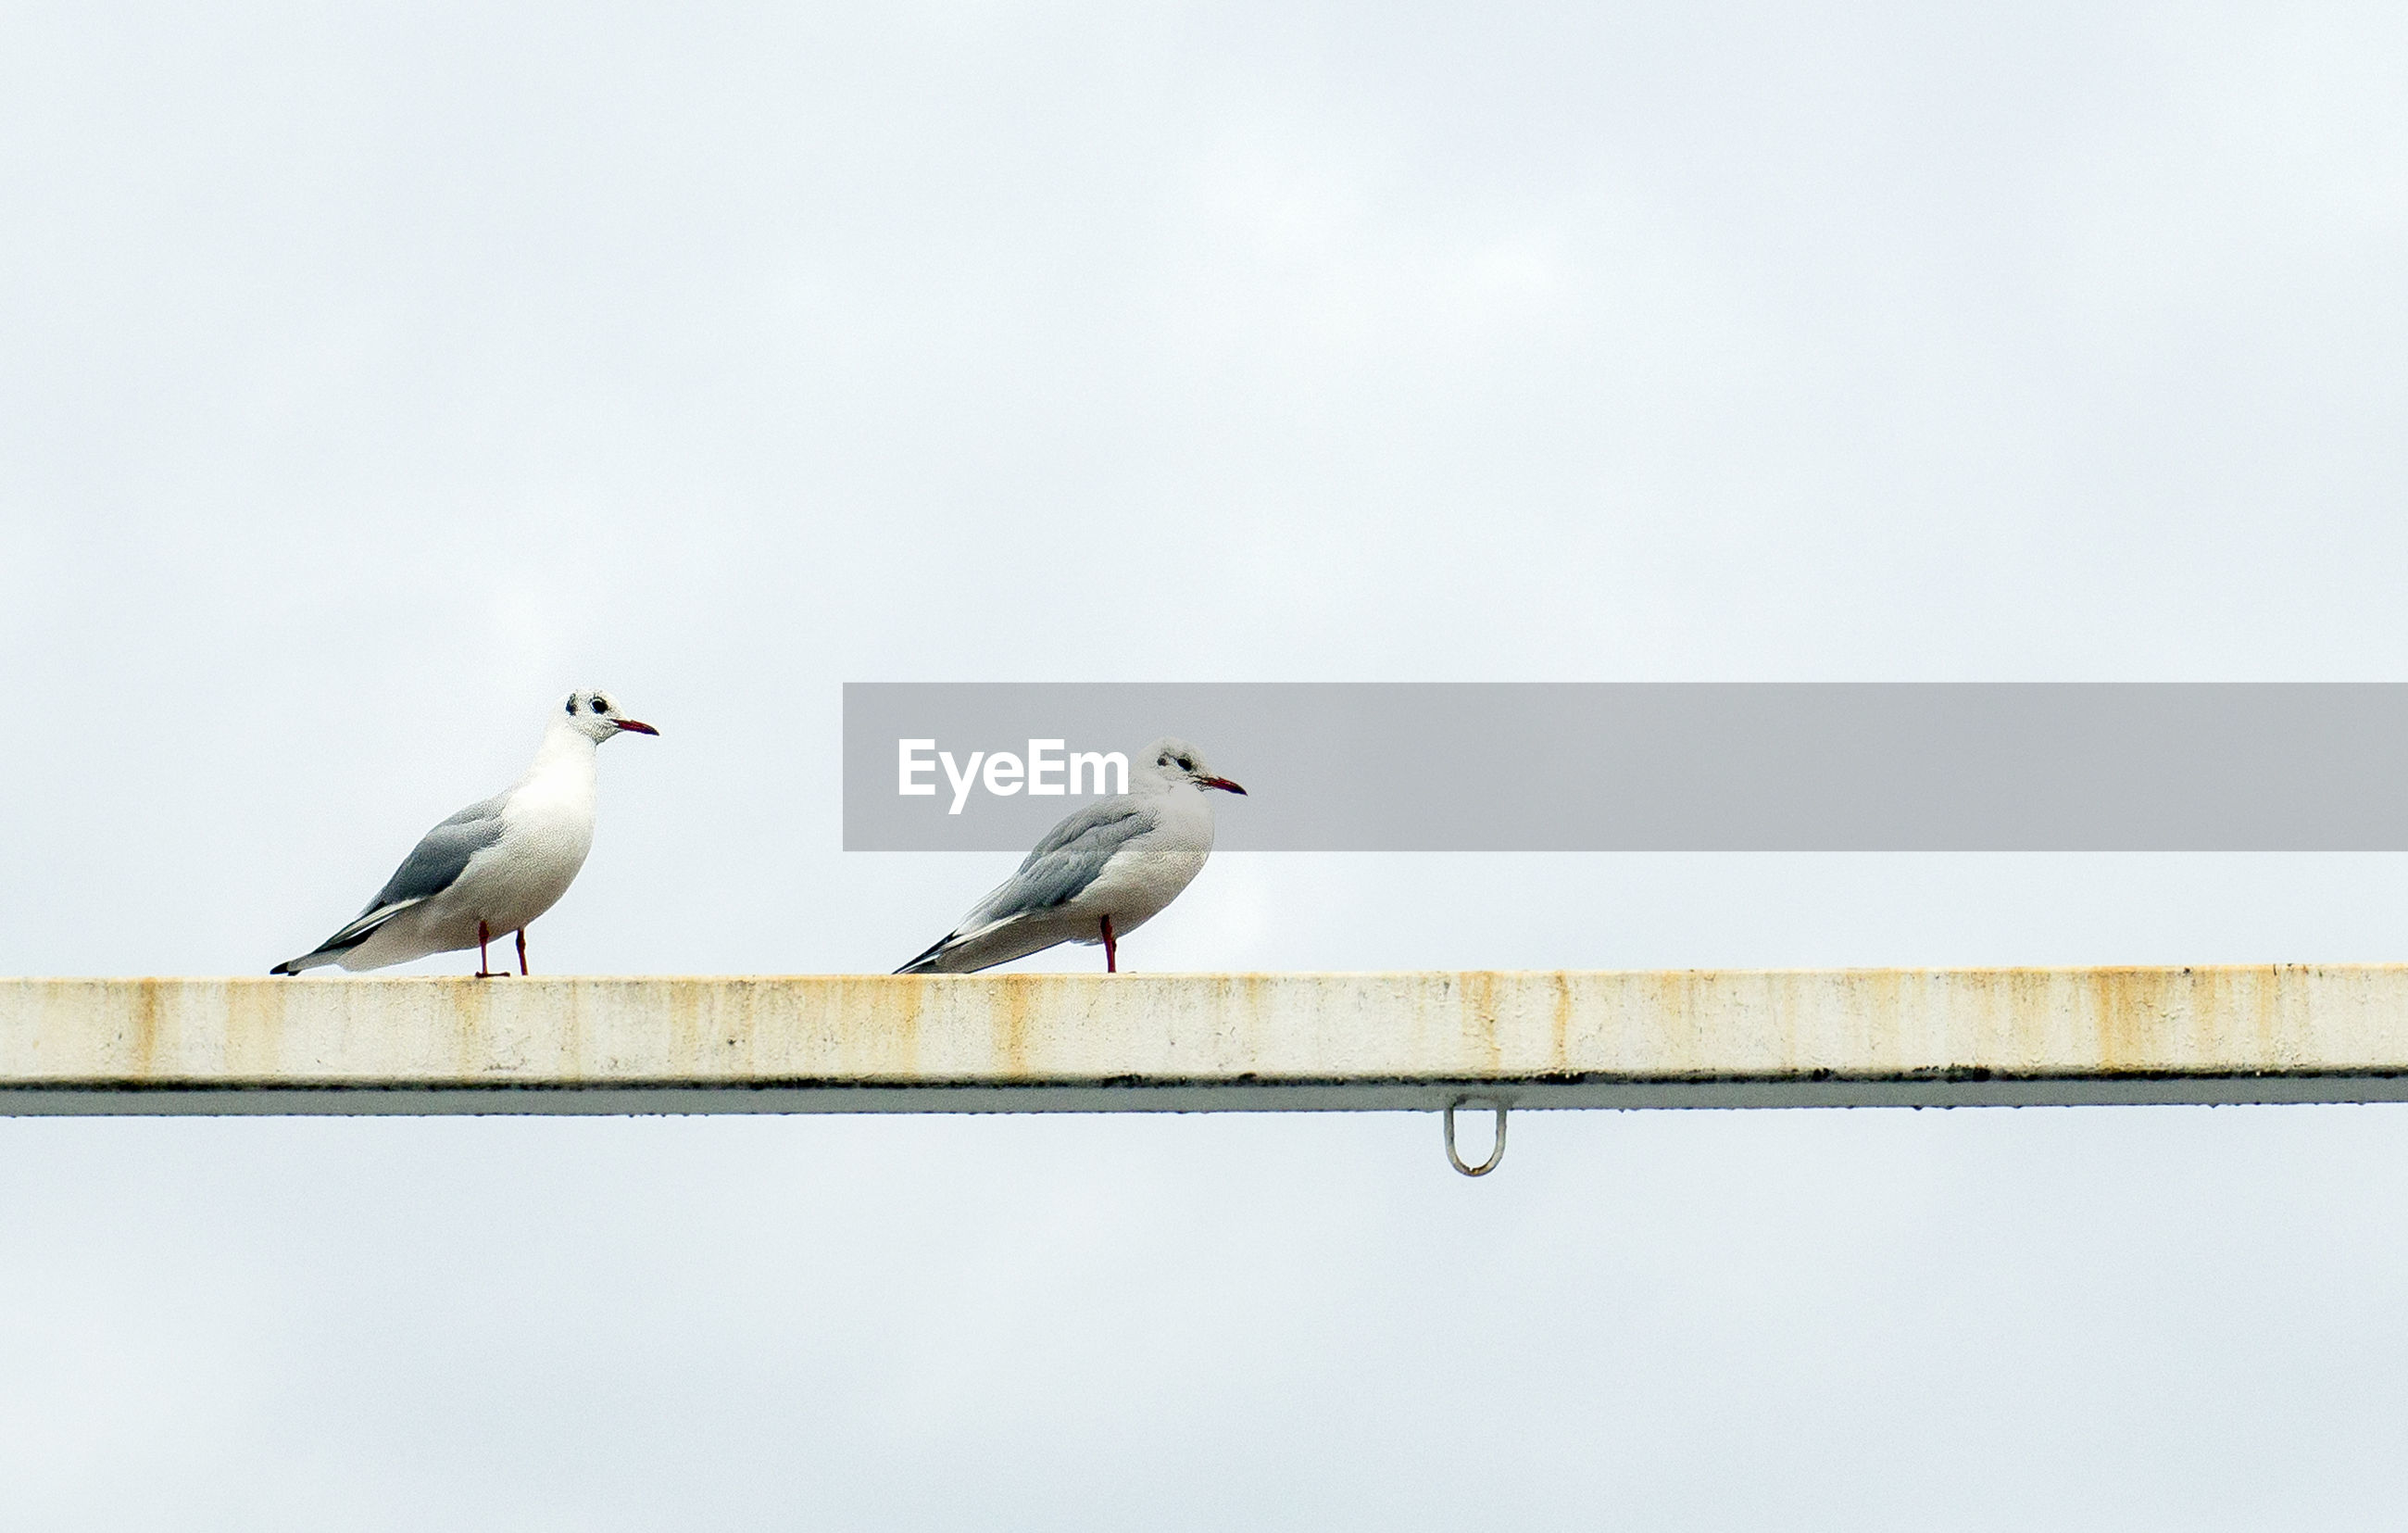 Low angle view of birds perched on railing